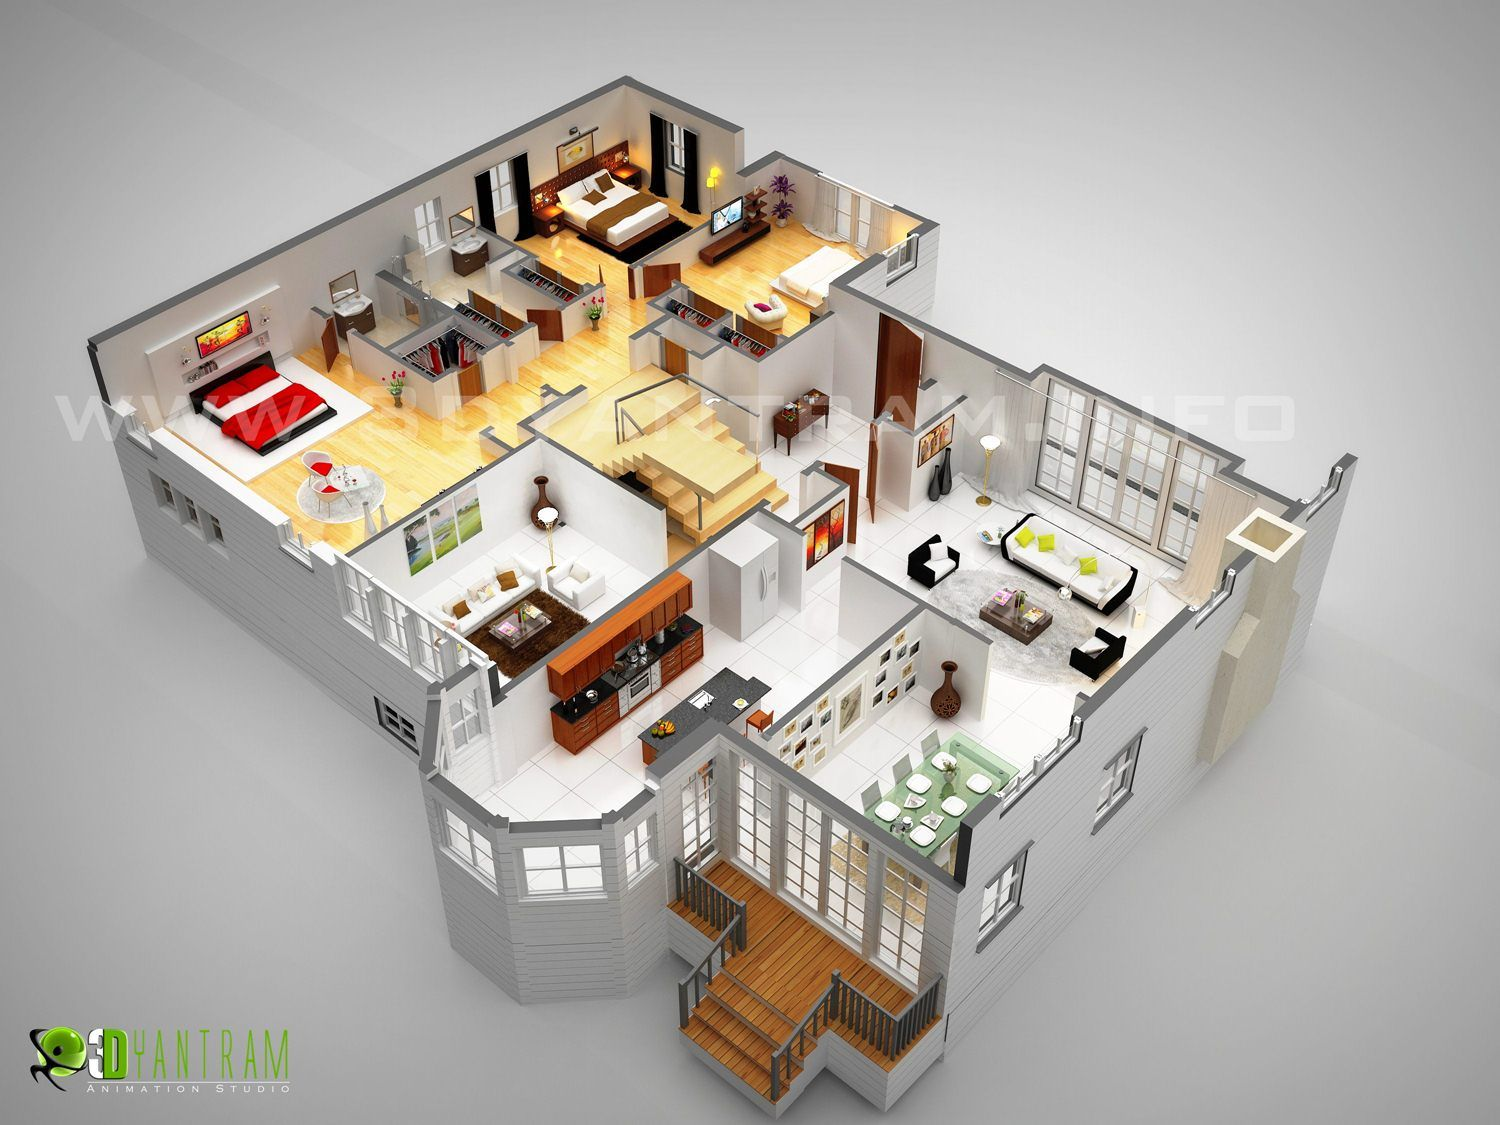 Laxurious residential 3d floor plan paris sims for How to design 3d house plans